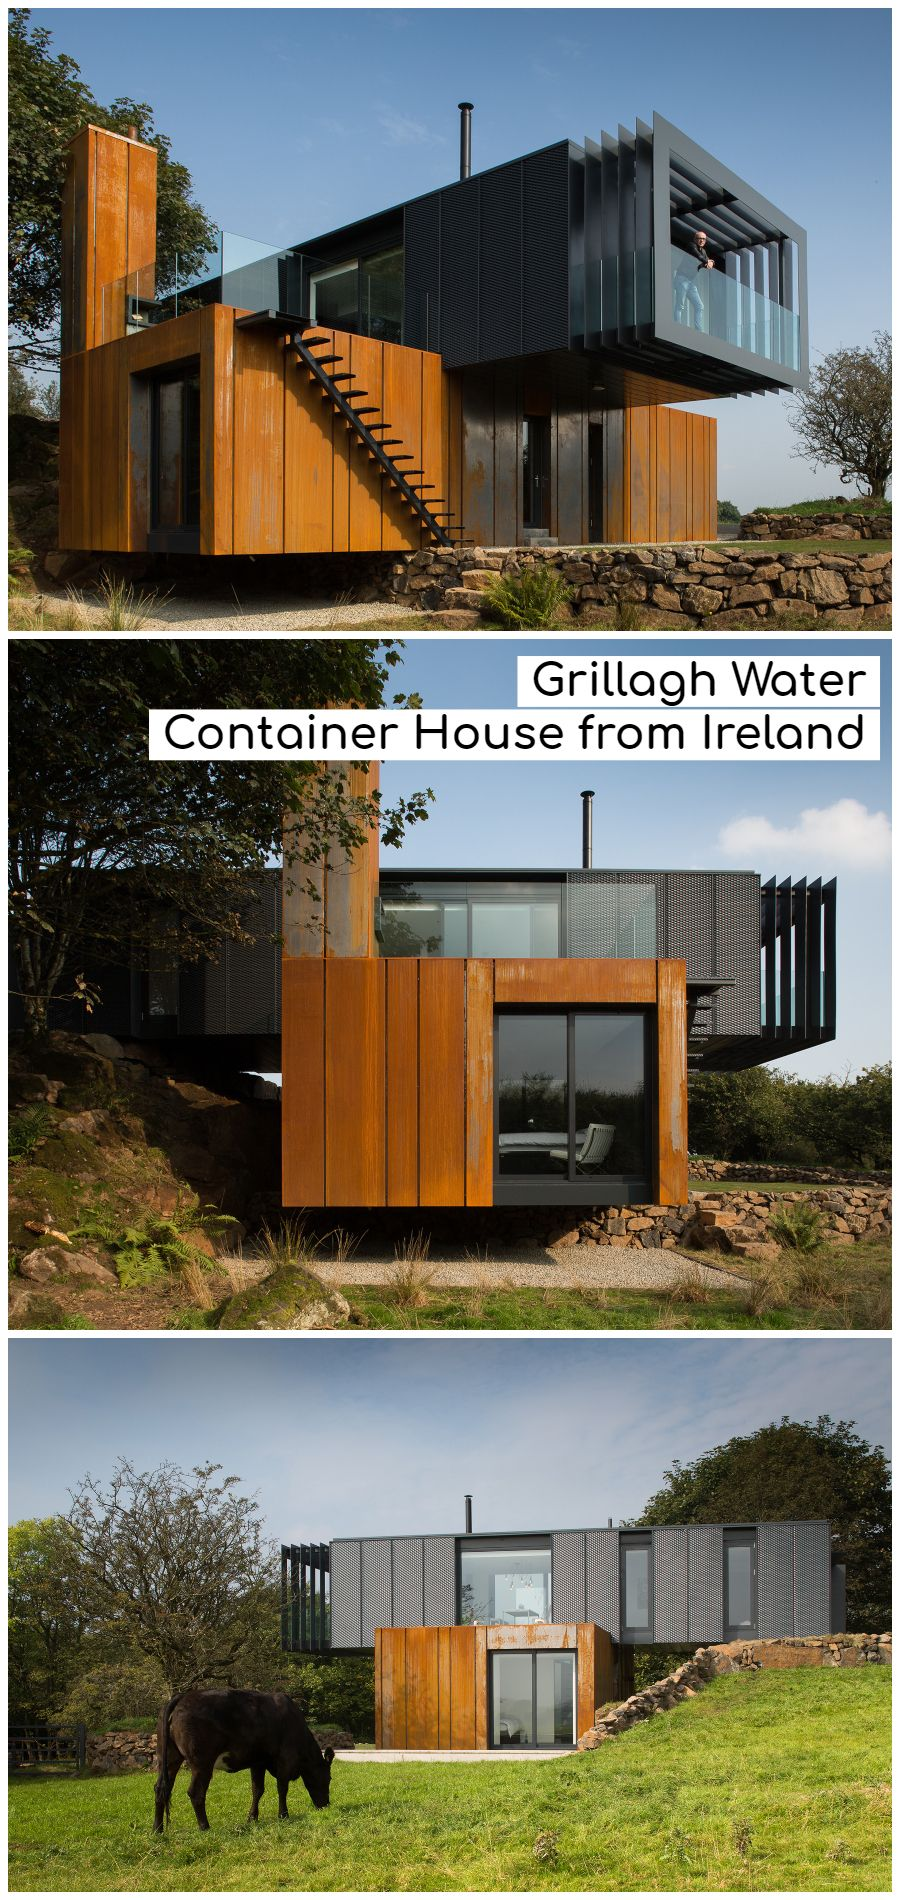 Grillagh Water Container House from Ireland